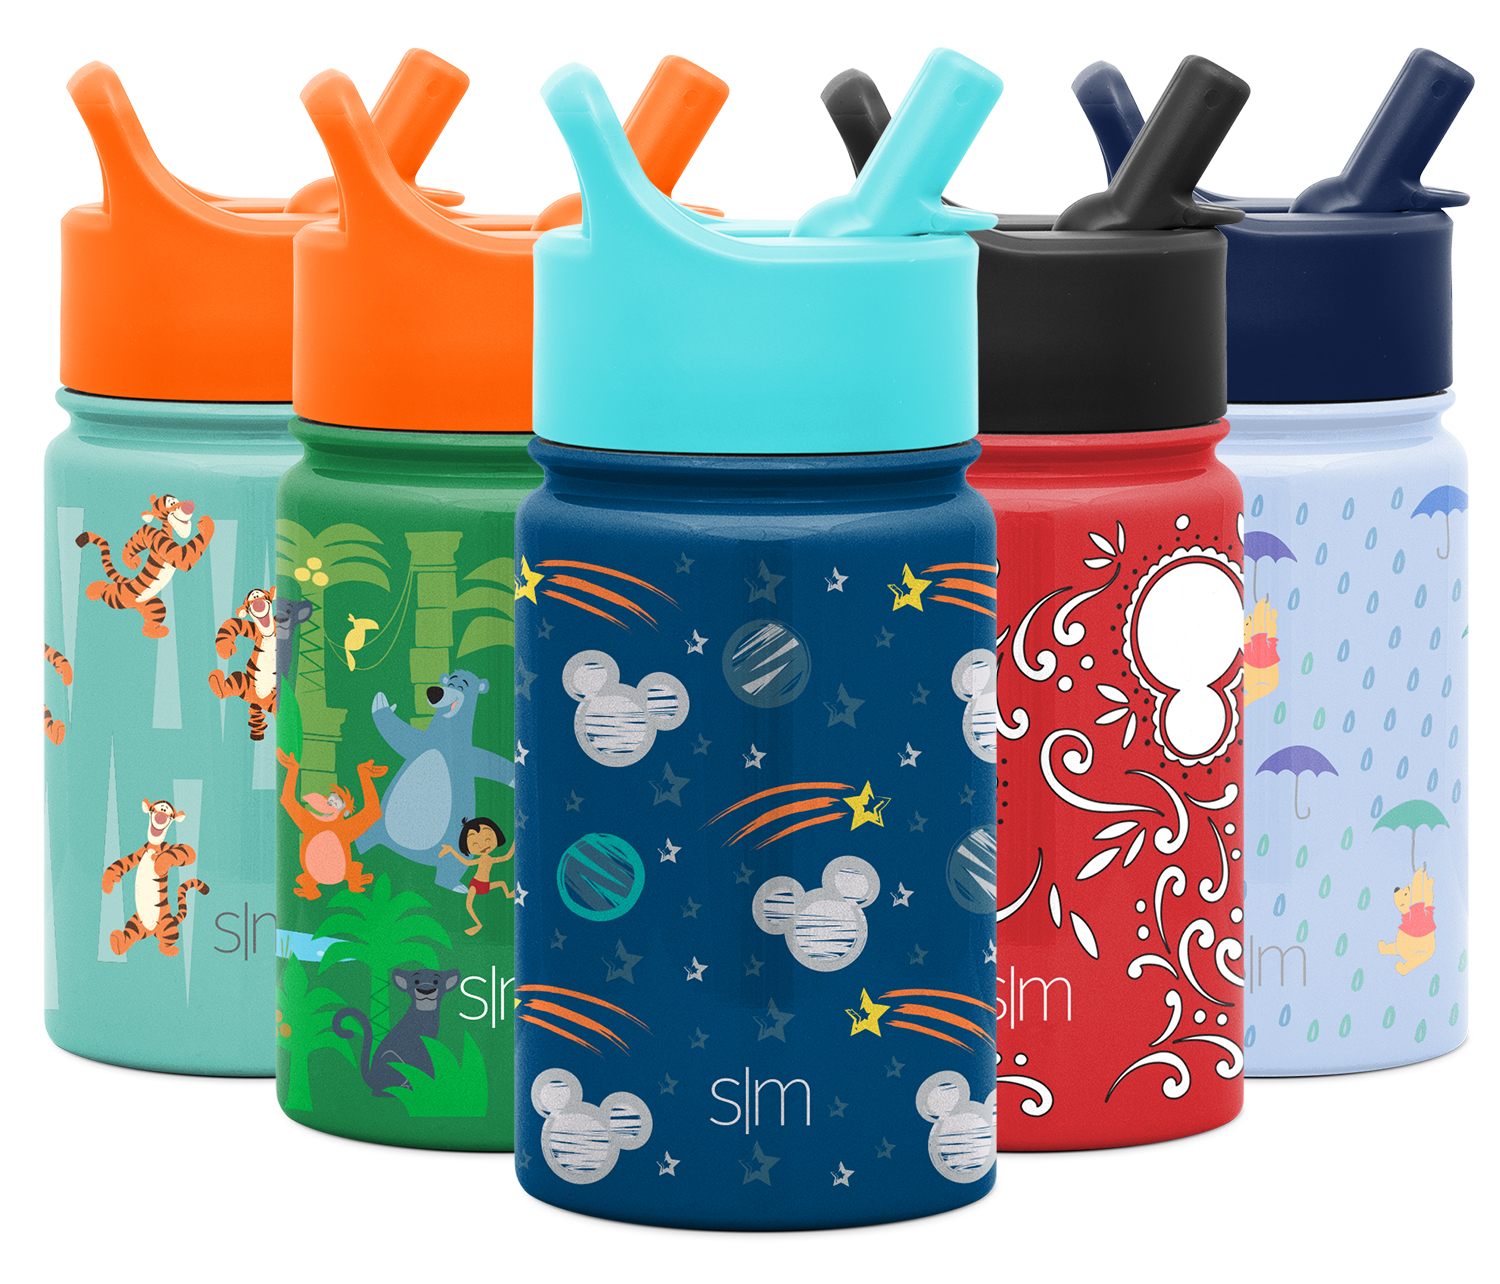 Dishwasher Safe Vacuum Insulated Double Wall Tumbler Travel Cup 18//8 Stainless Steel Simple Modern 10oz Disney Summit Kids Water Bottle Thermos with Straw Lid Minnie Retro Disney